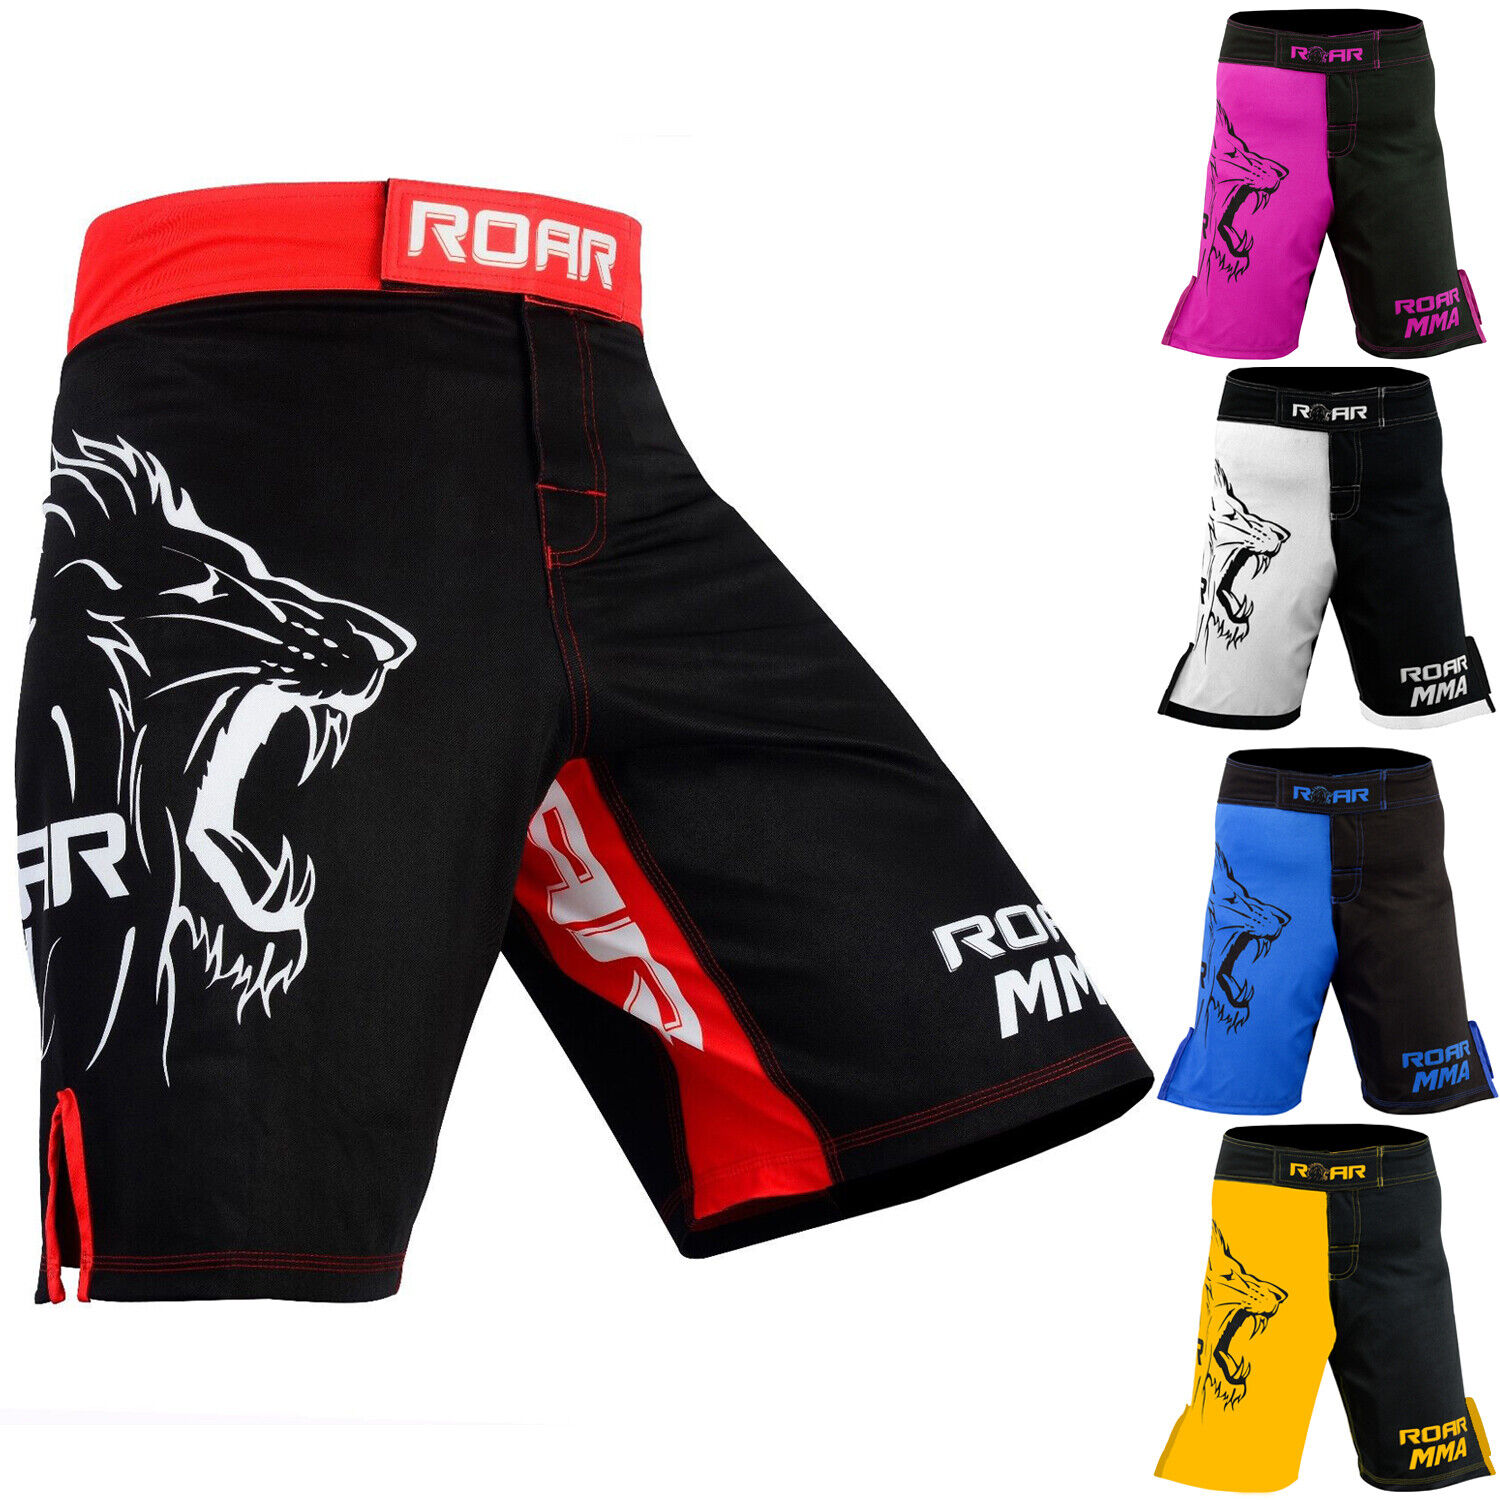 ROAR MMA Shorts Grappling UFC Cage Fight Muay Thai Trunks Wi